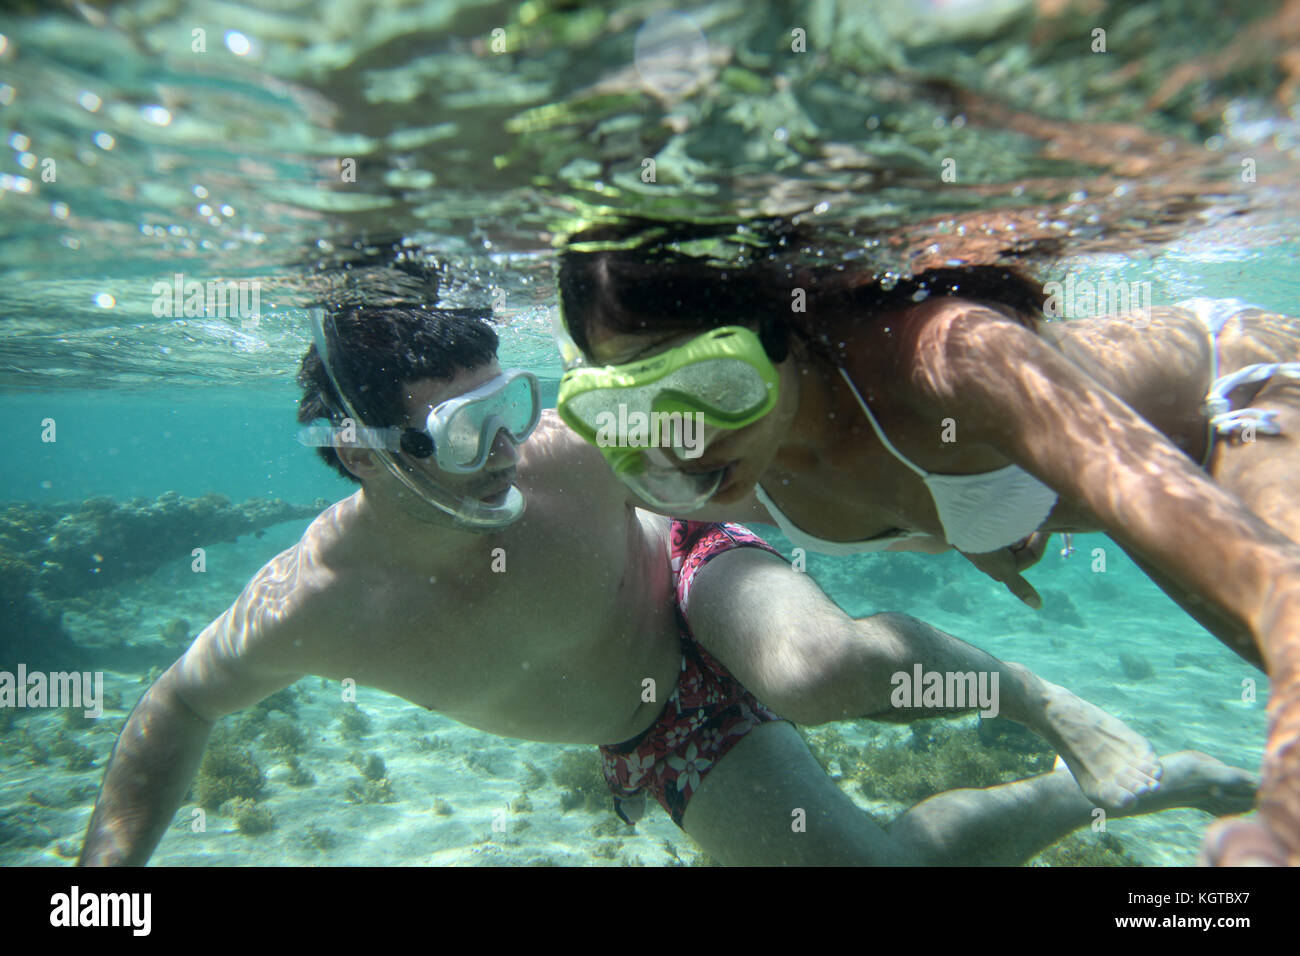 Couple snorkeling in Caribbean waters - Stock Image